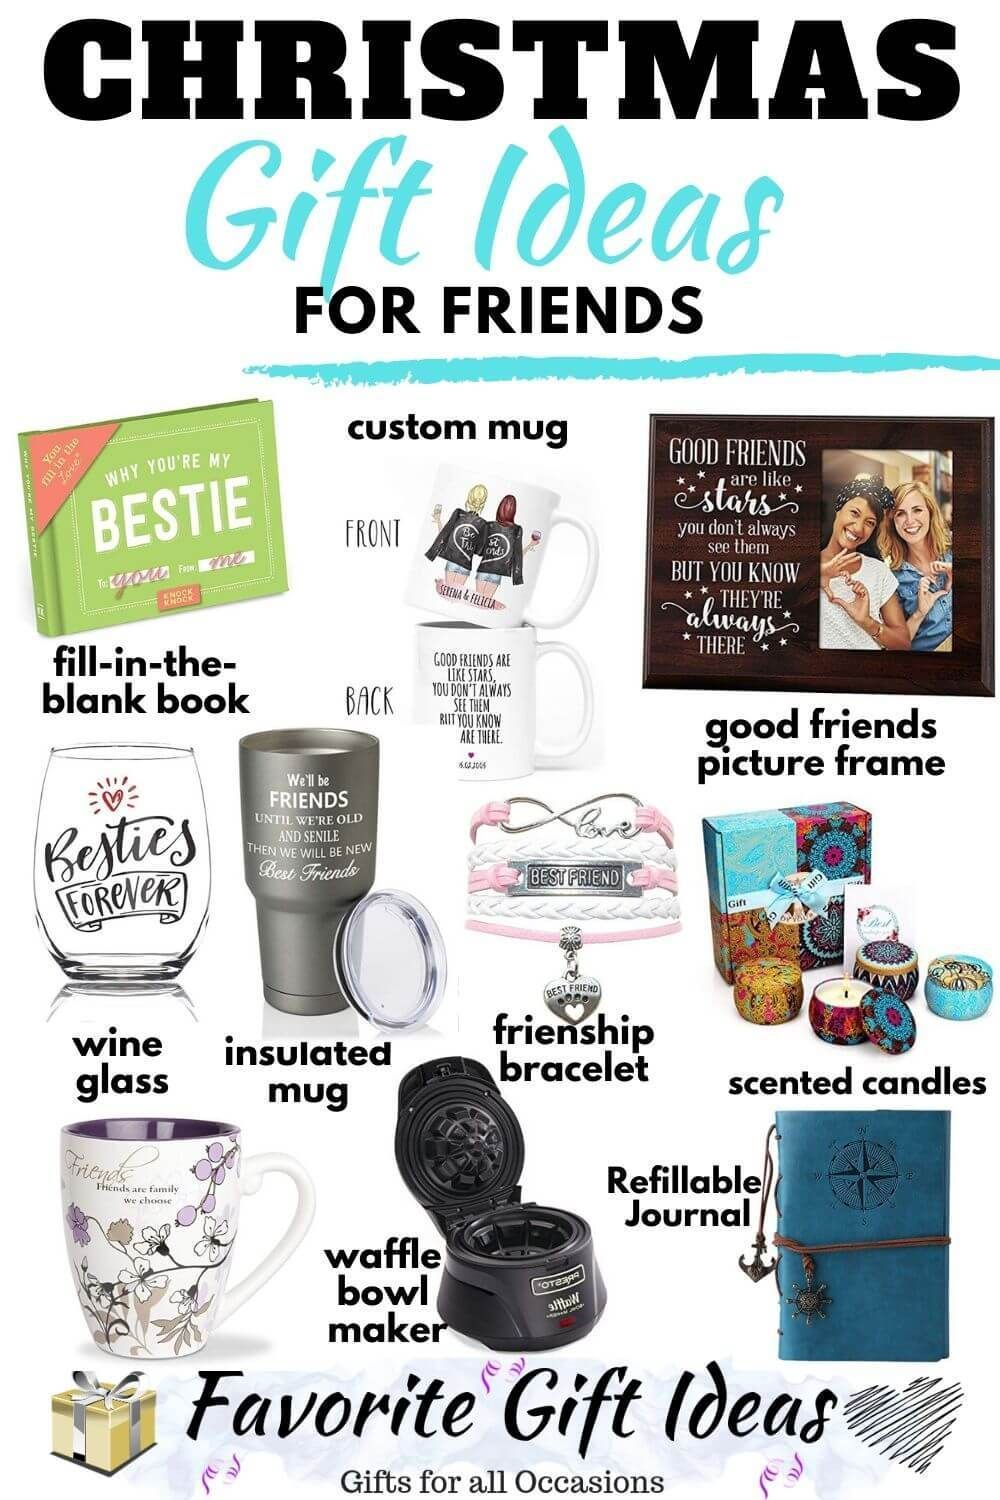 20 Christmas Gift Ideas For Friends 2019 Gift Ideas Girlfriend Best Friend Gifts Favorite Things Gift Diy Best Friend Gifts